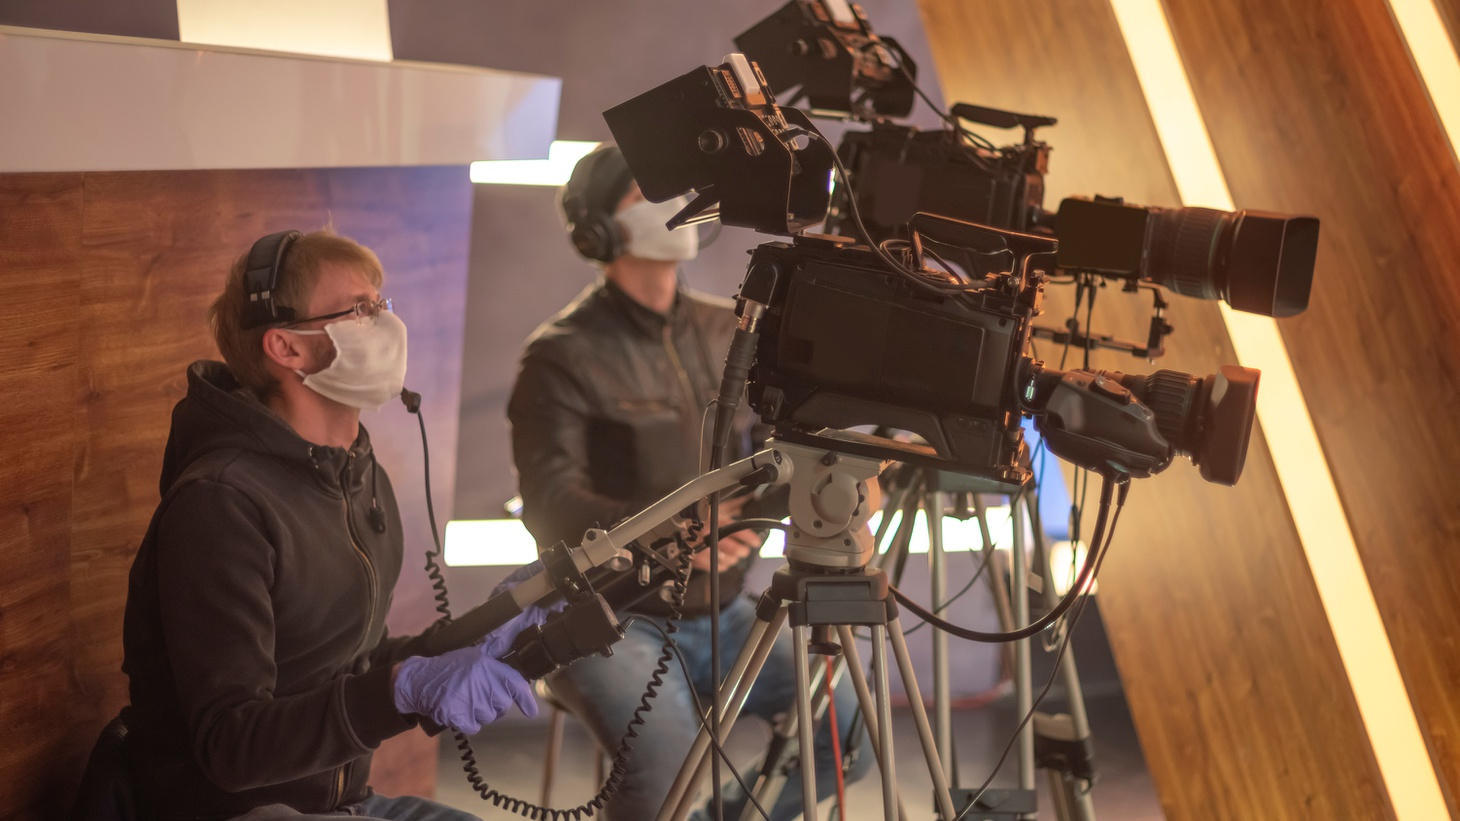 Masked cameramen are filming a television show in a studio.